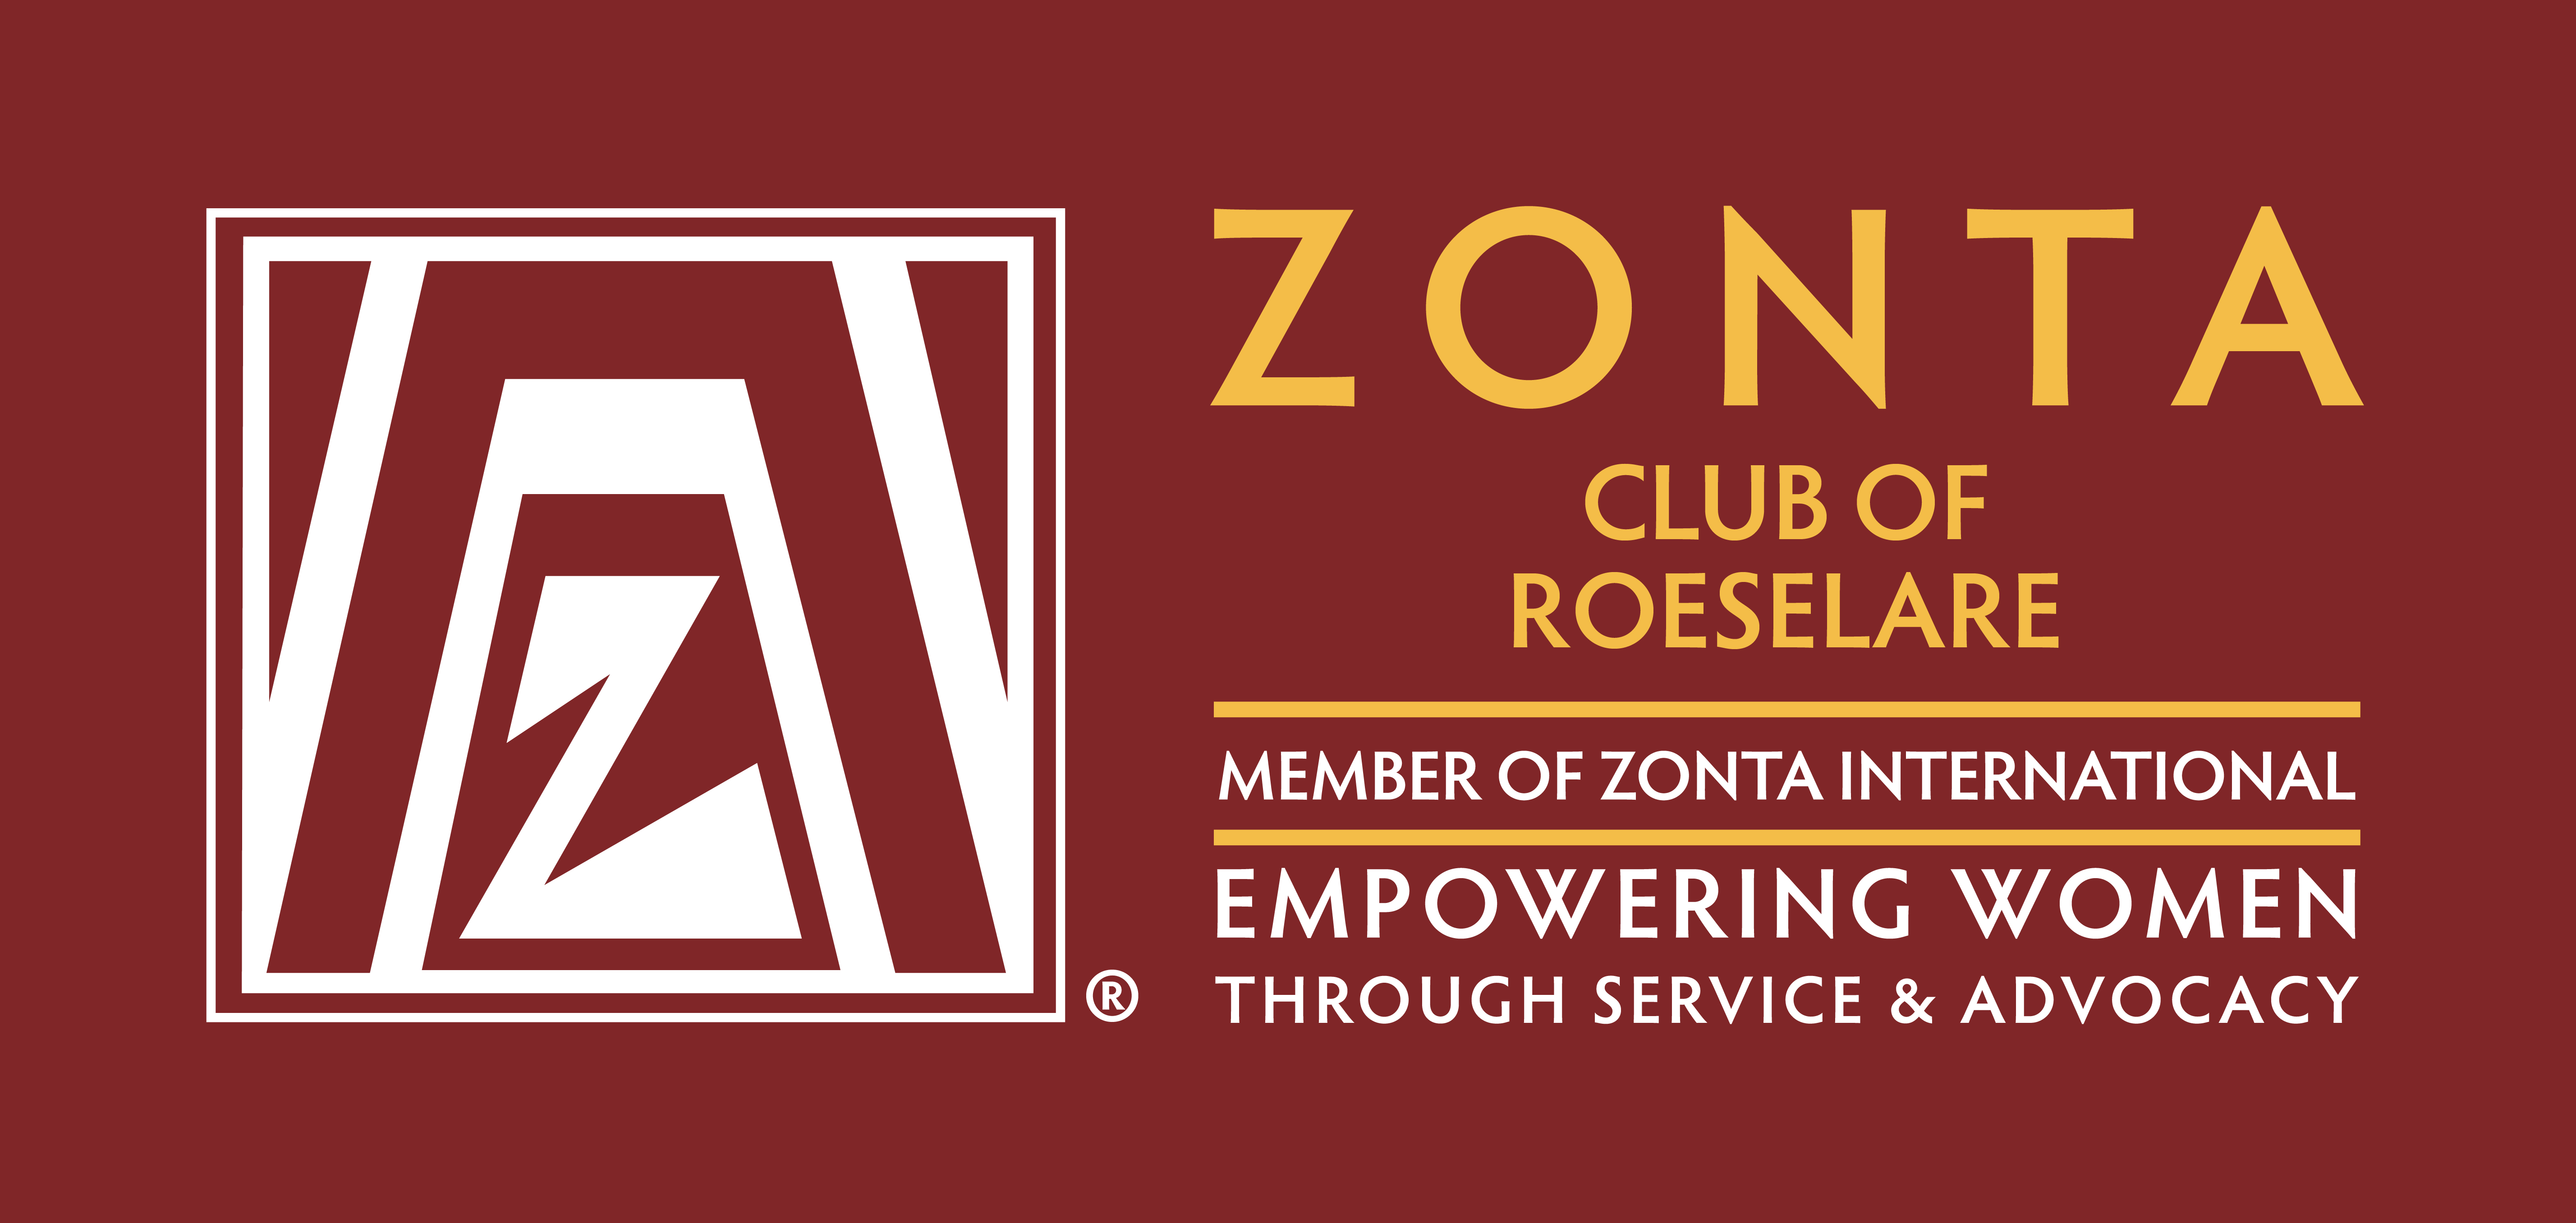 Goud Zonta Club